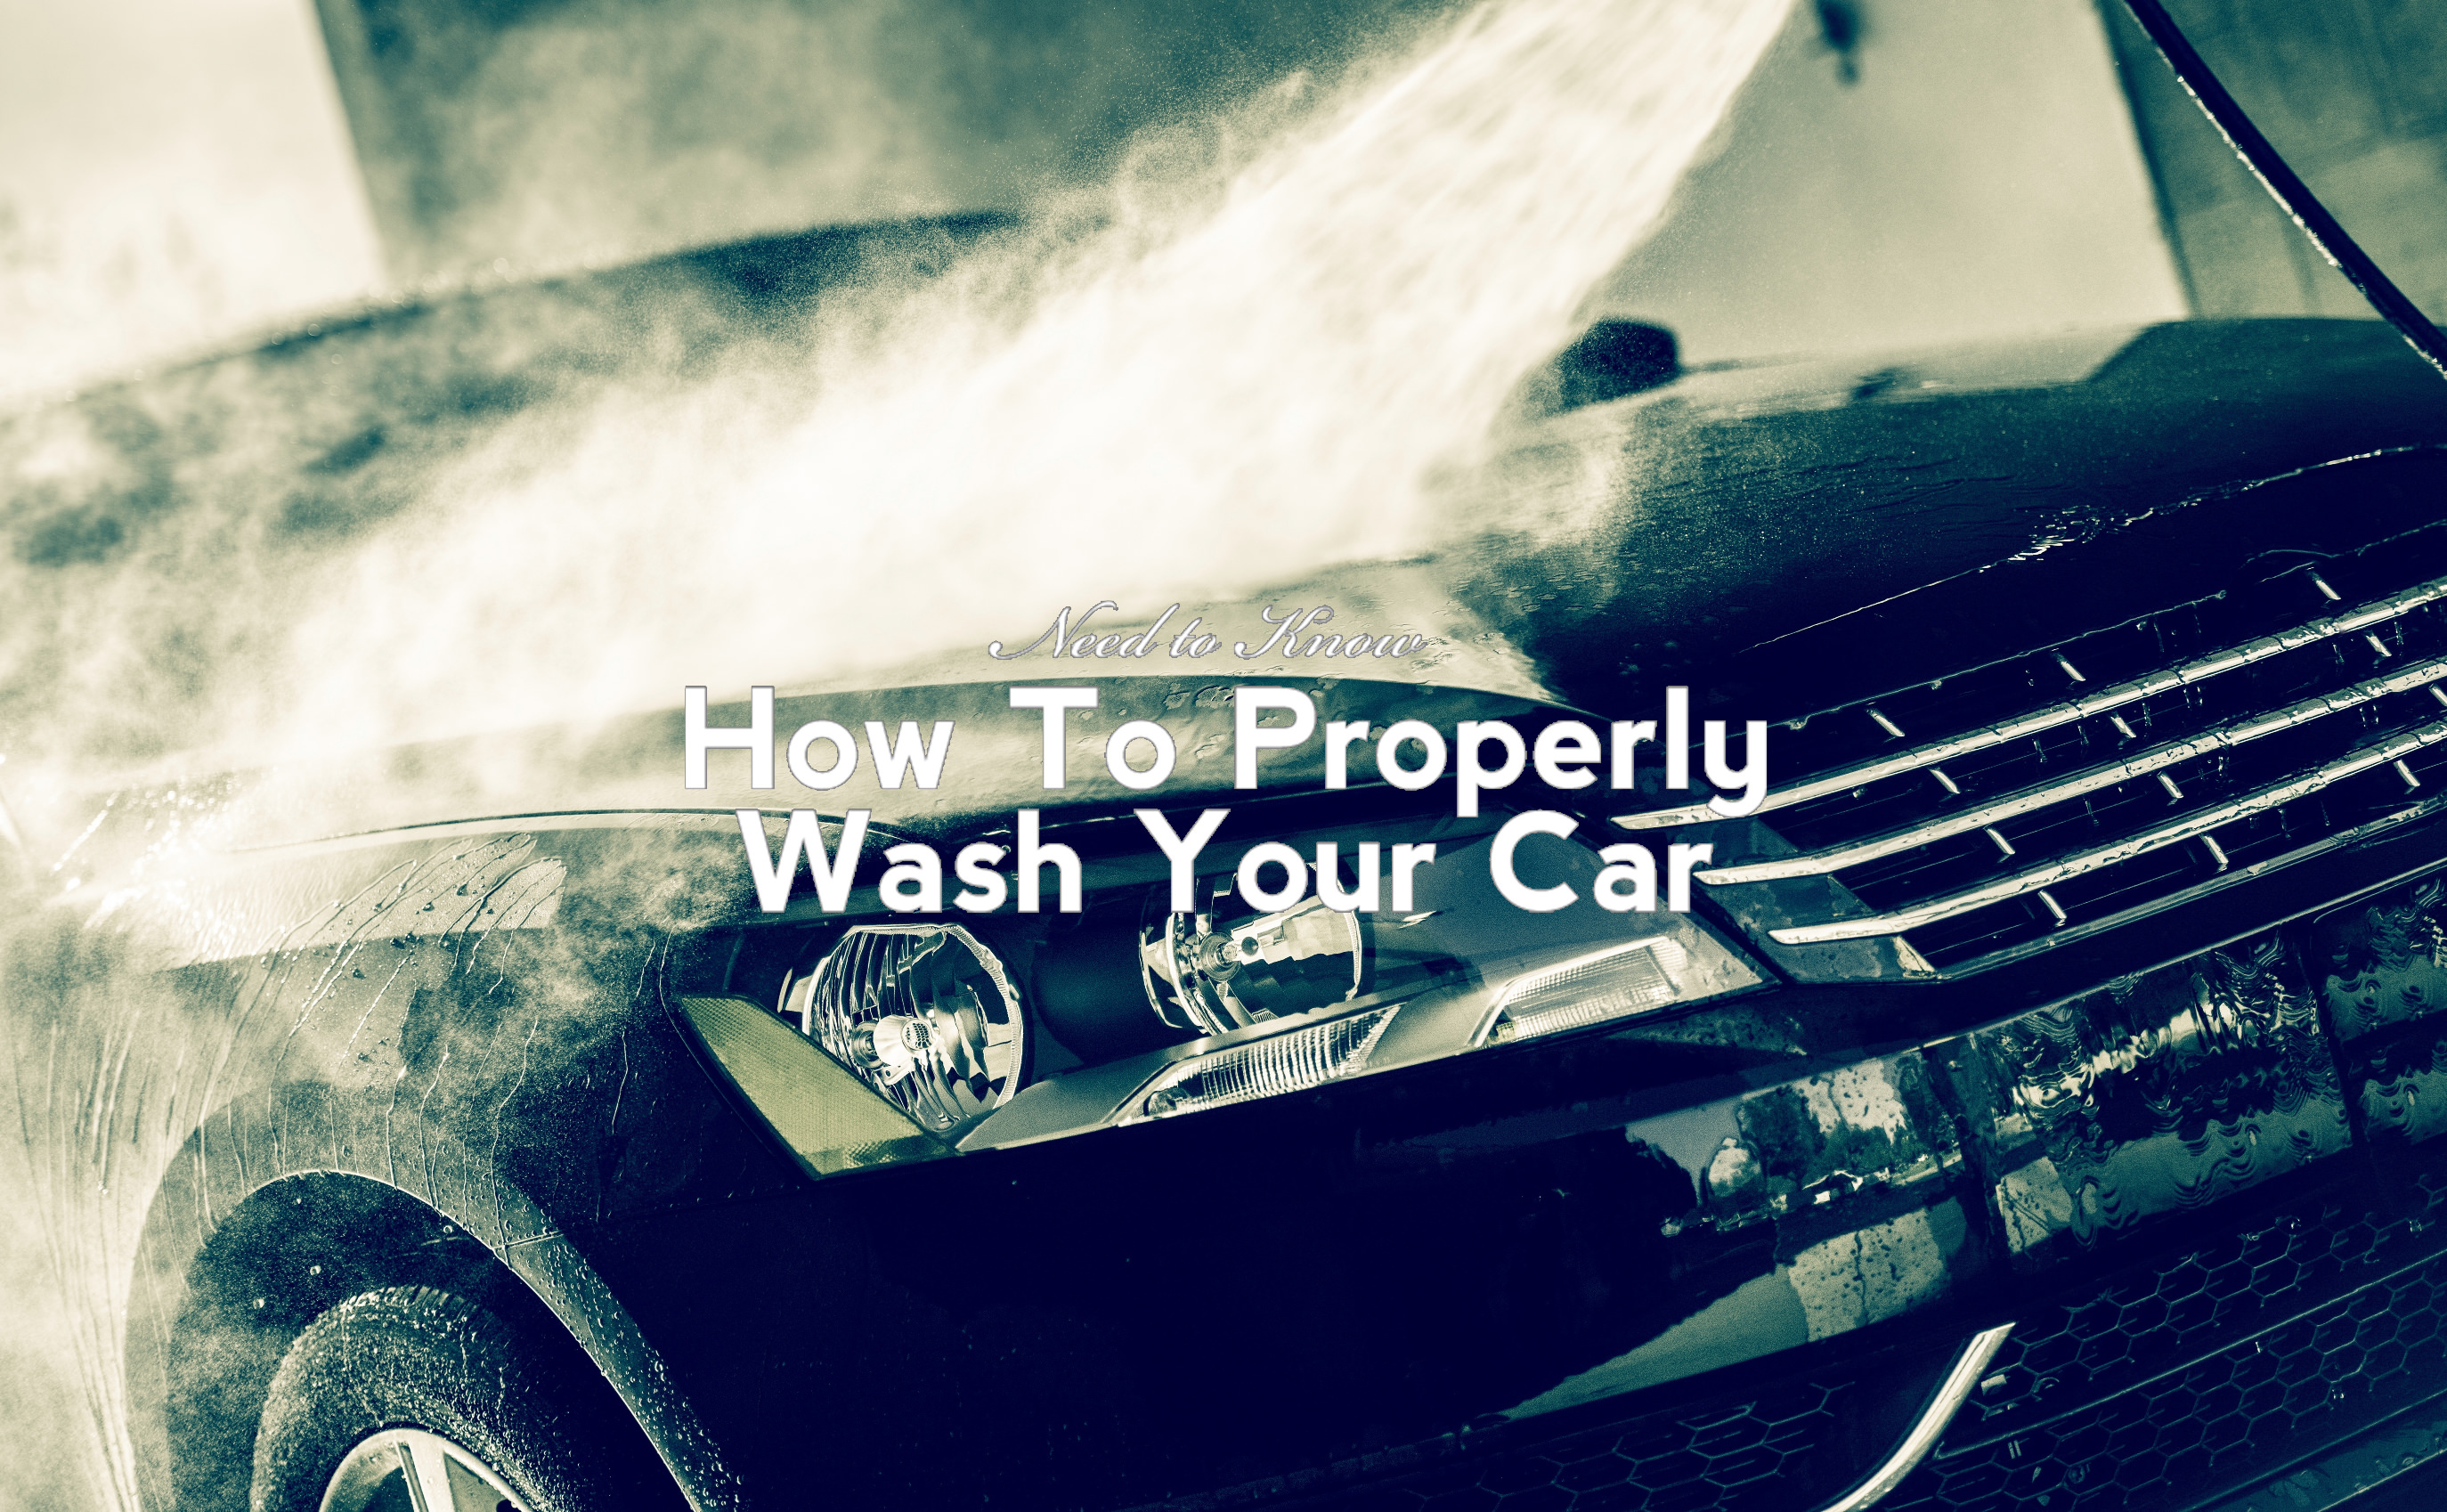 How To Properly Wash Your Car